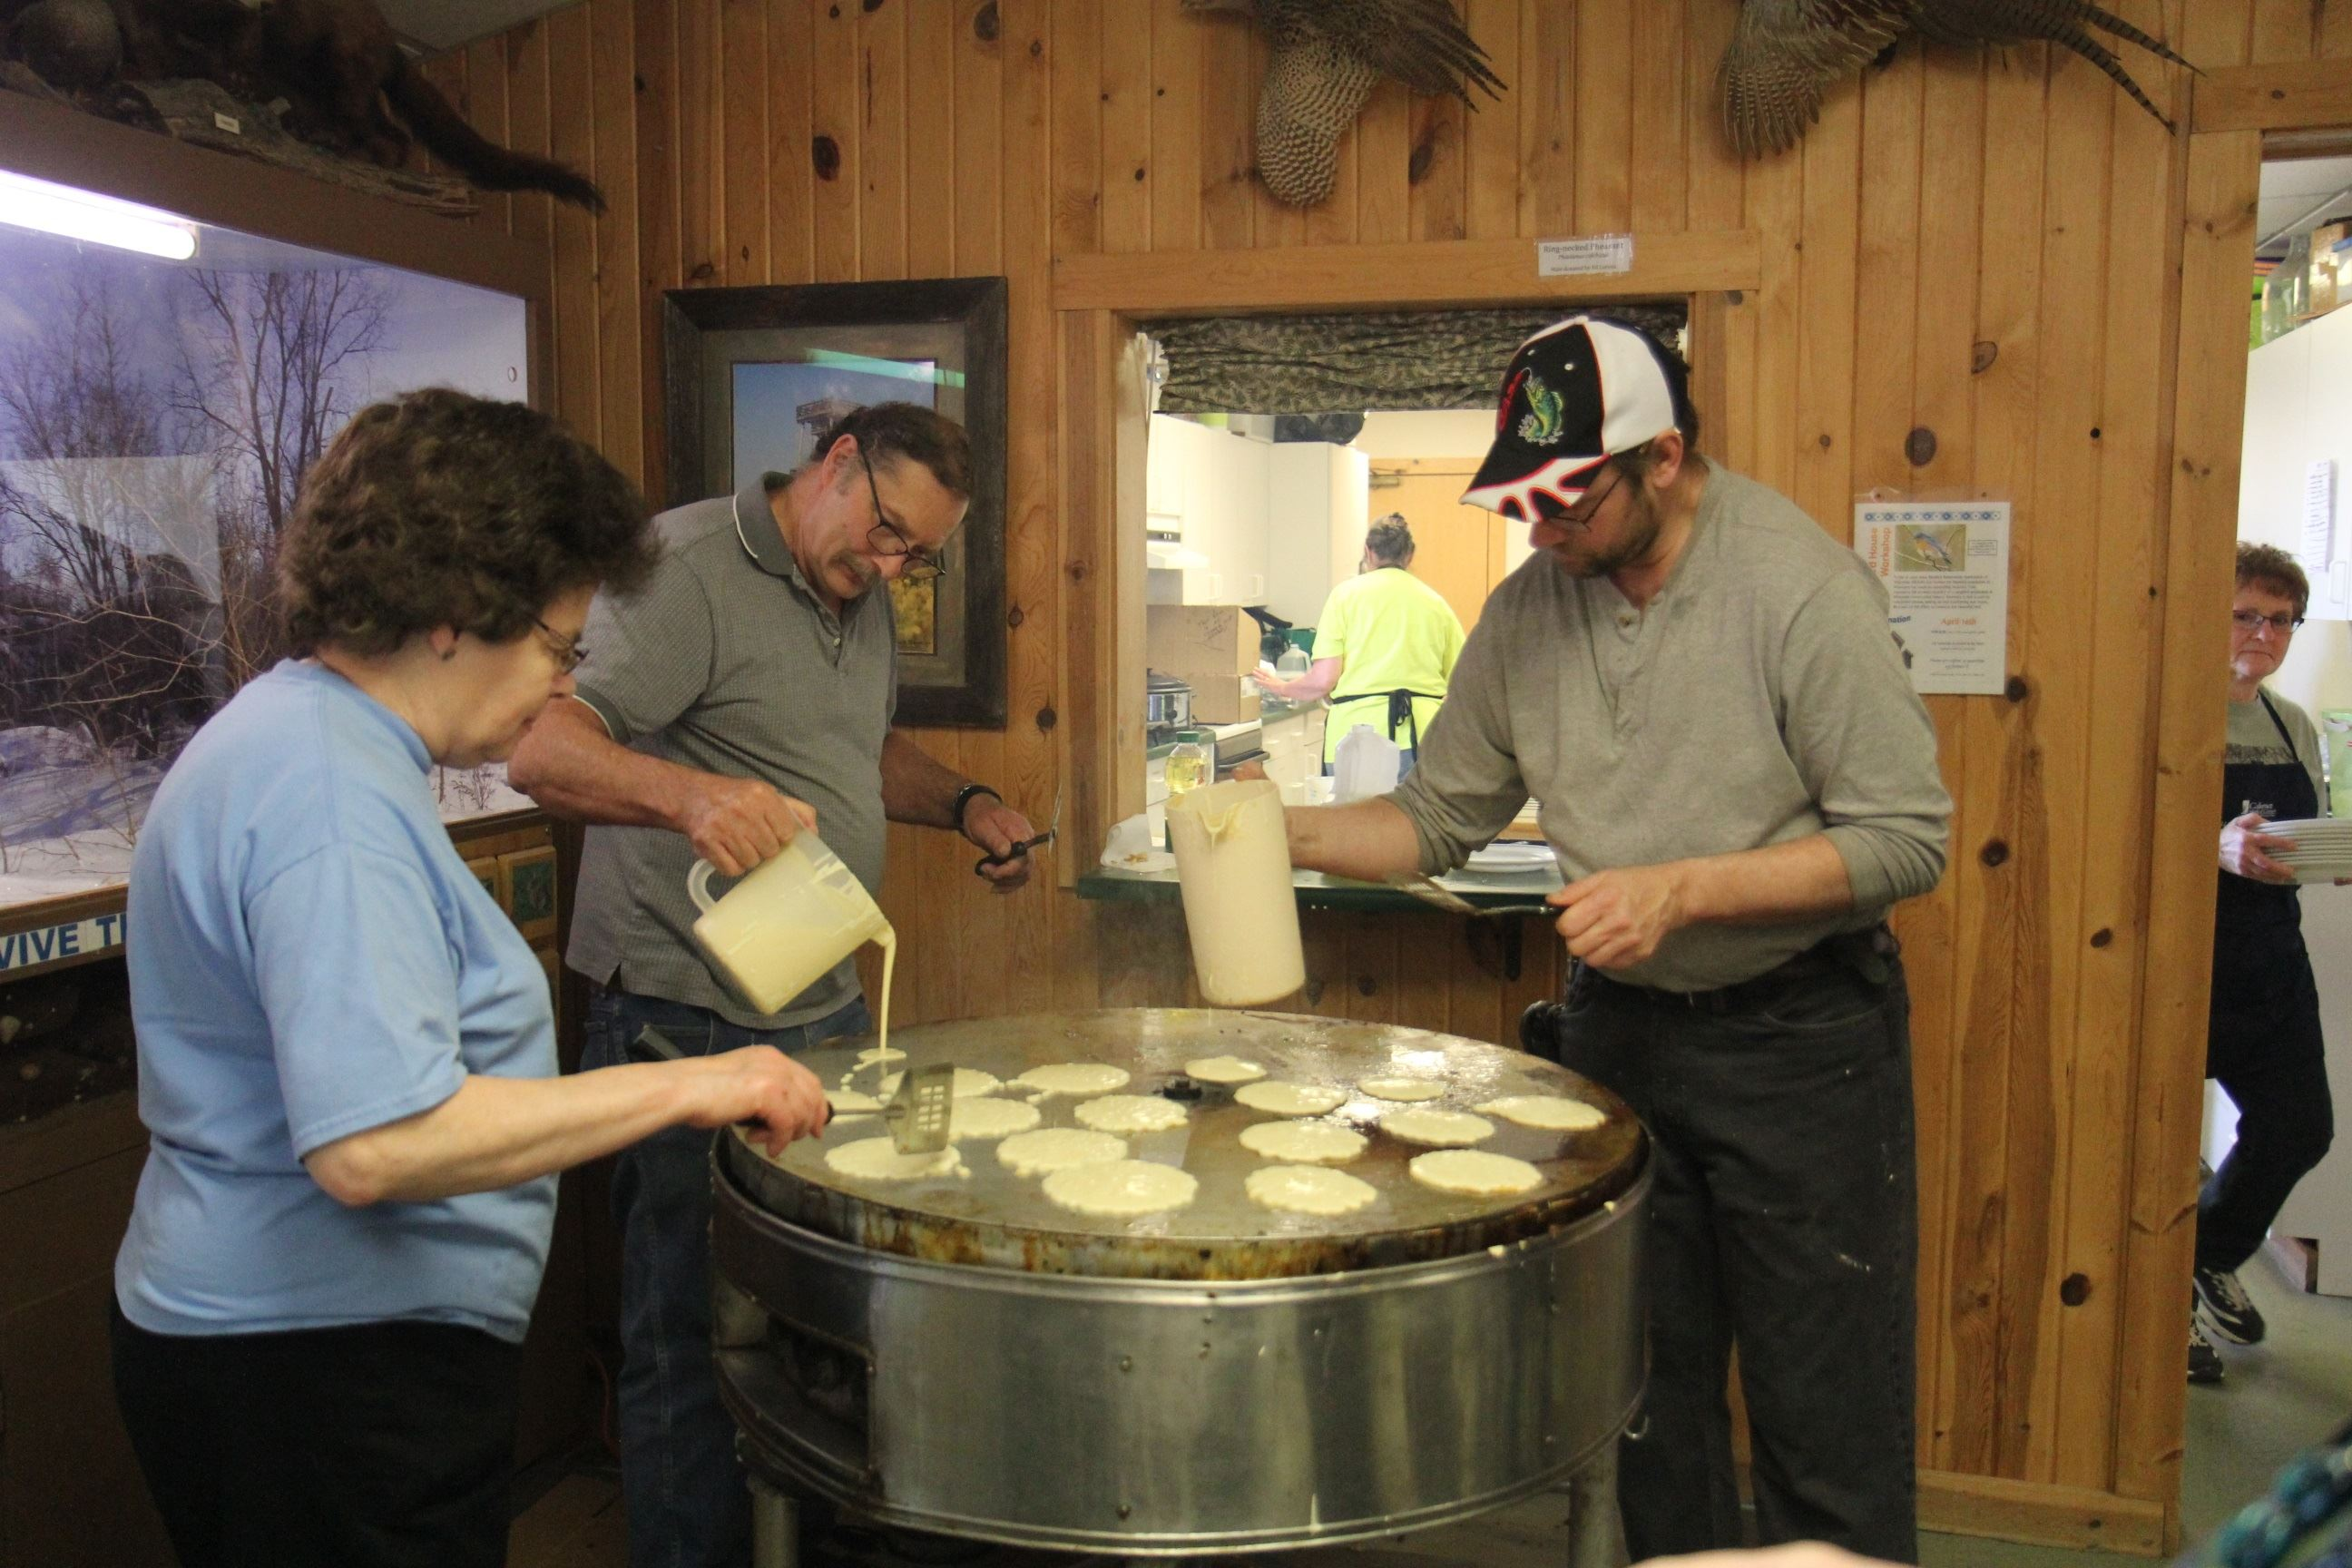 3 people pouring pancake batter onto a large round cooker